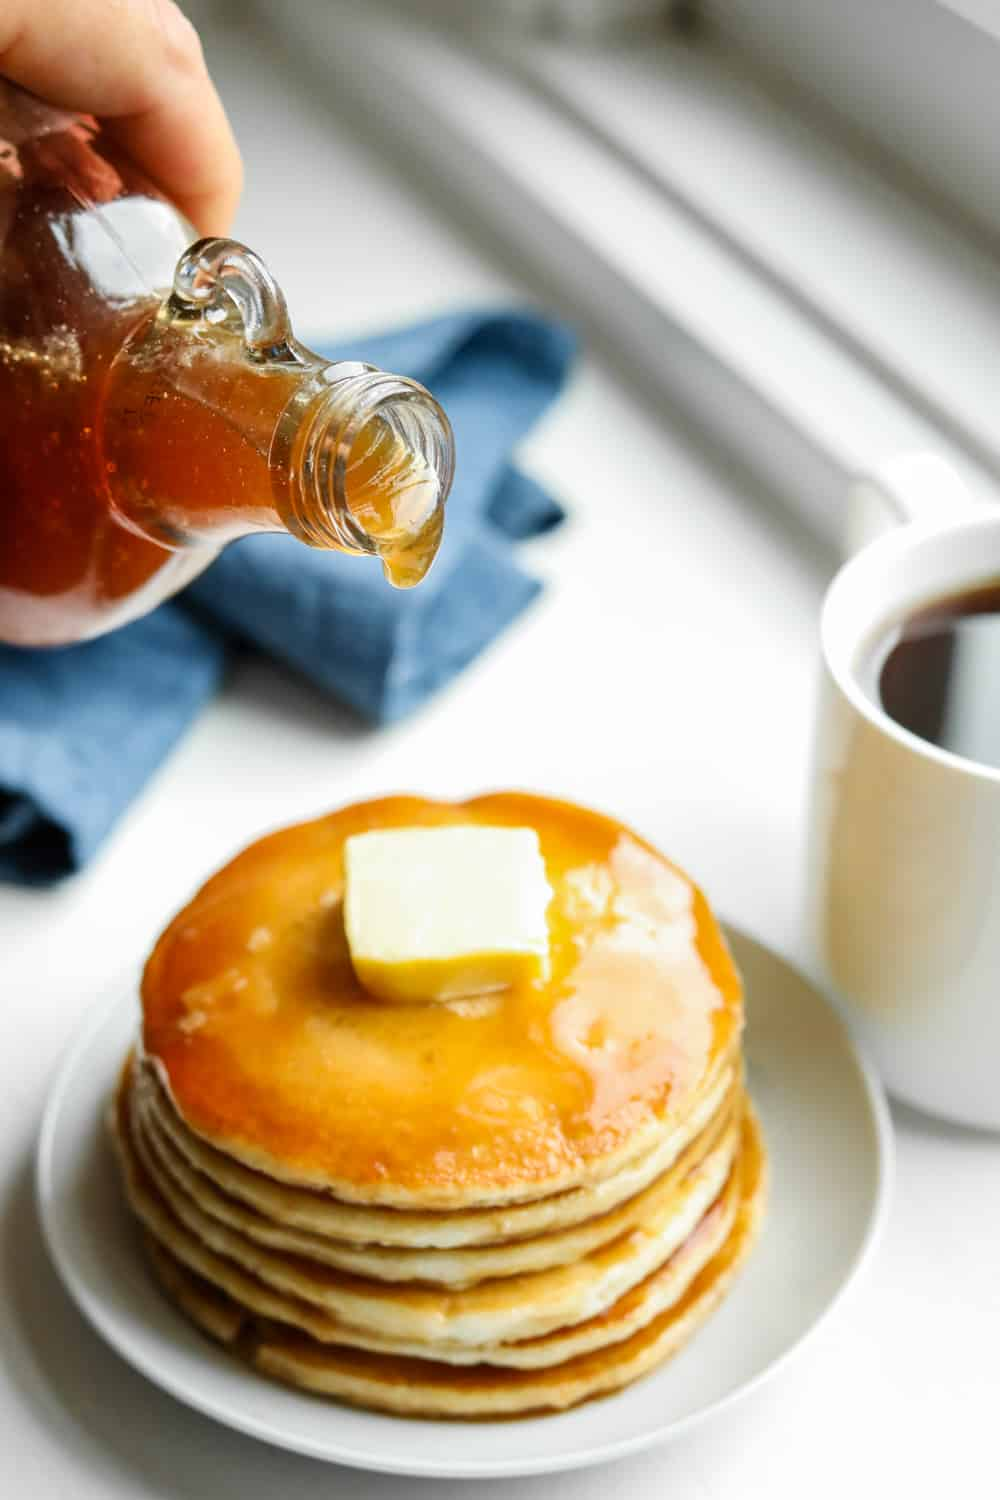 Maple syrup just about to be poured on a stack of pancakes.